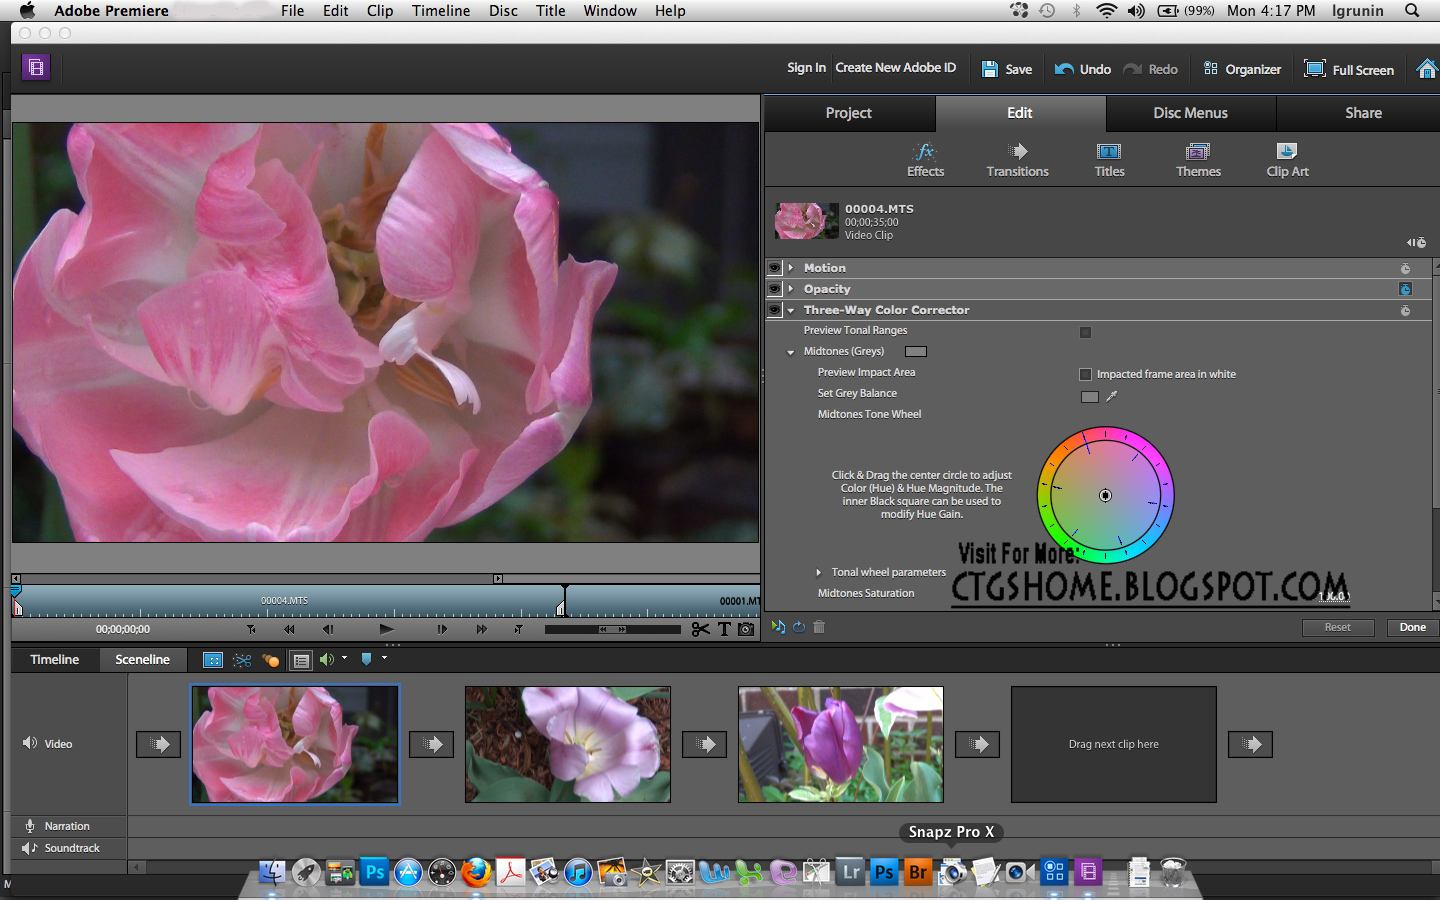 Download and install Adobe Premiere Elements